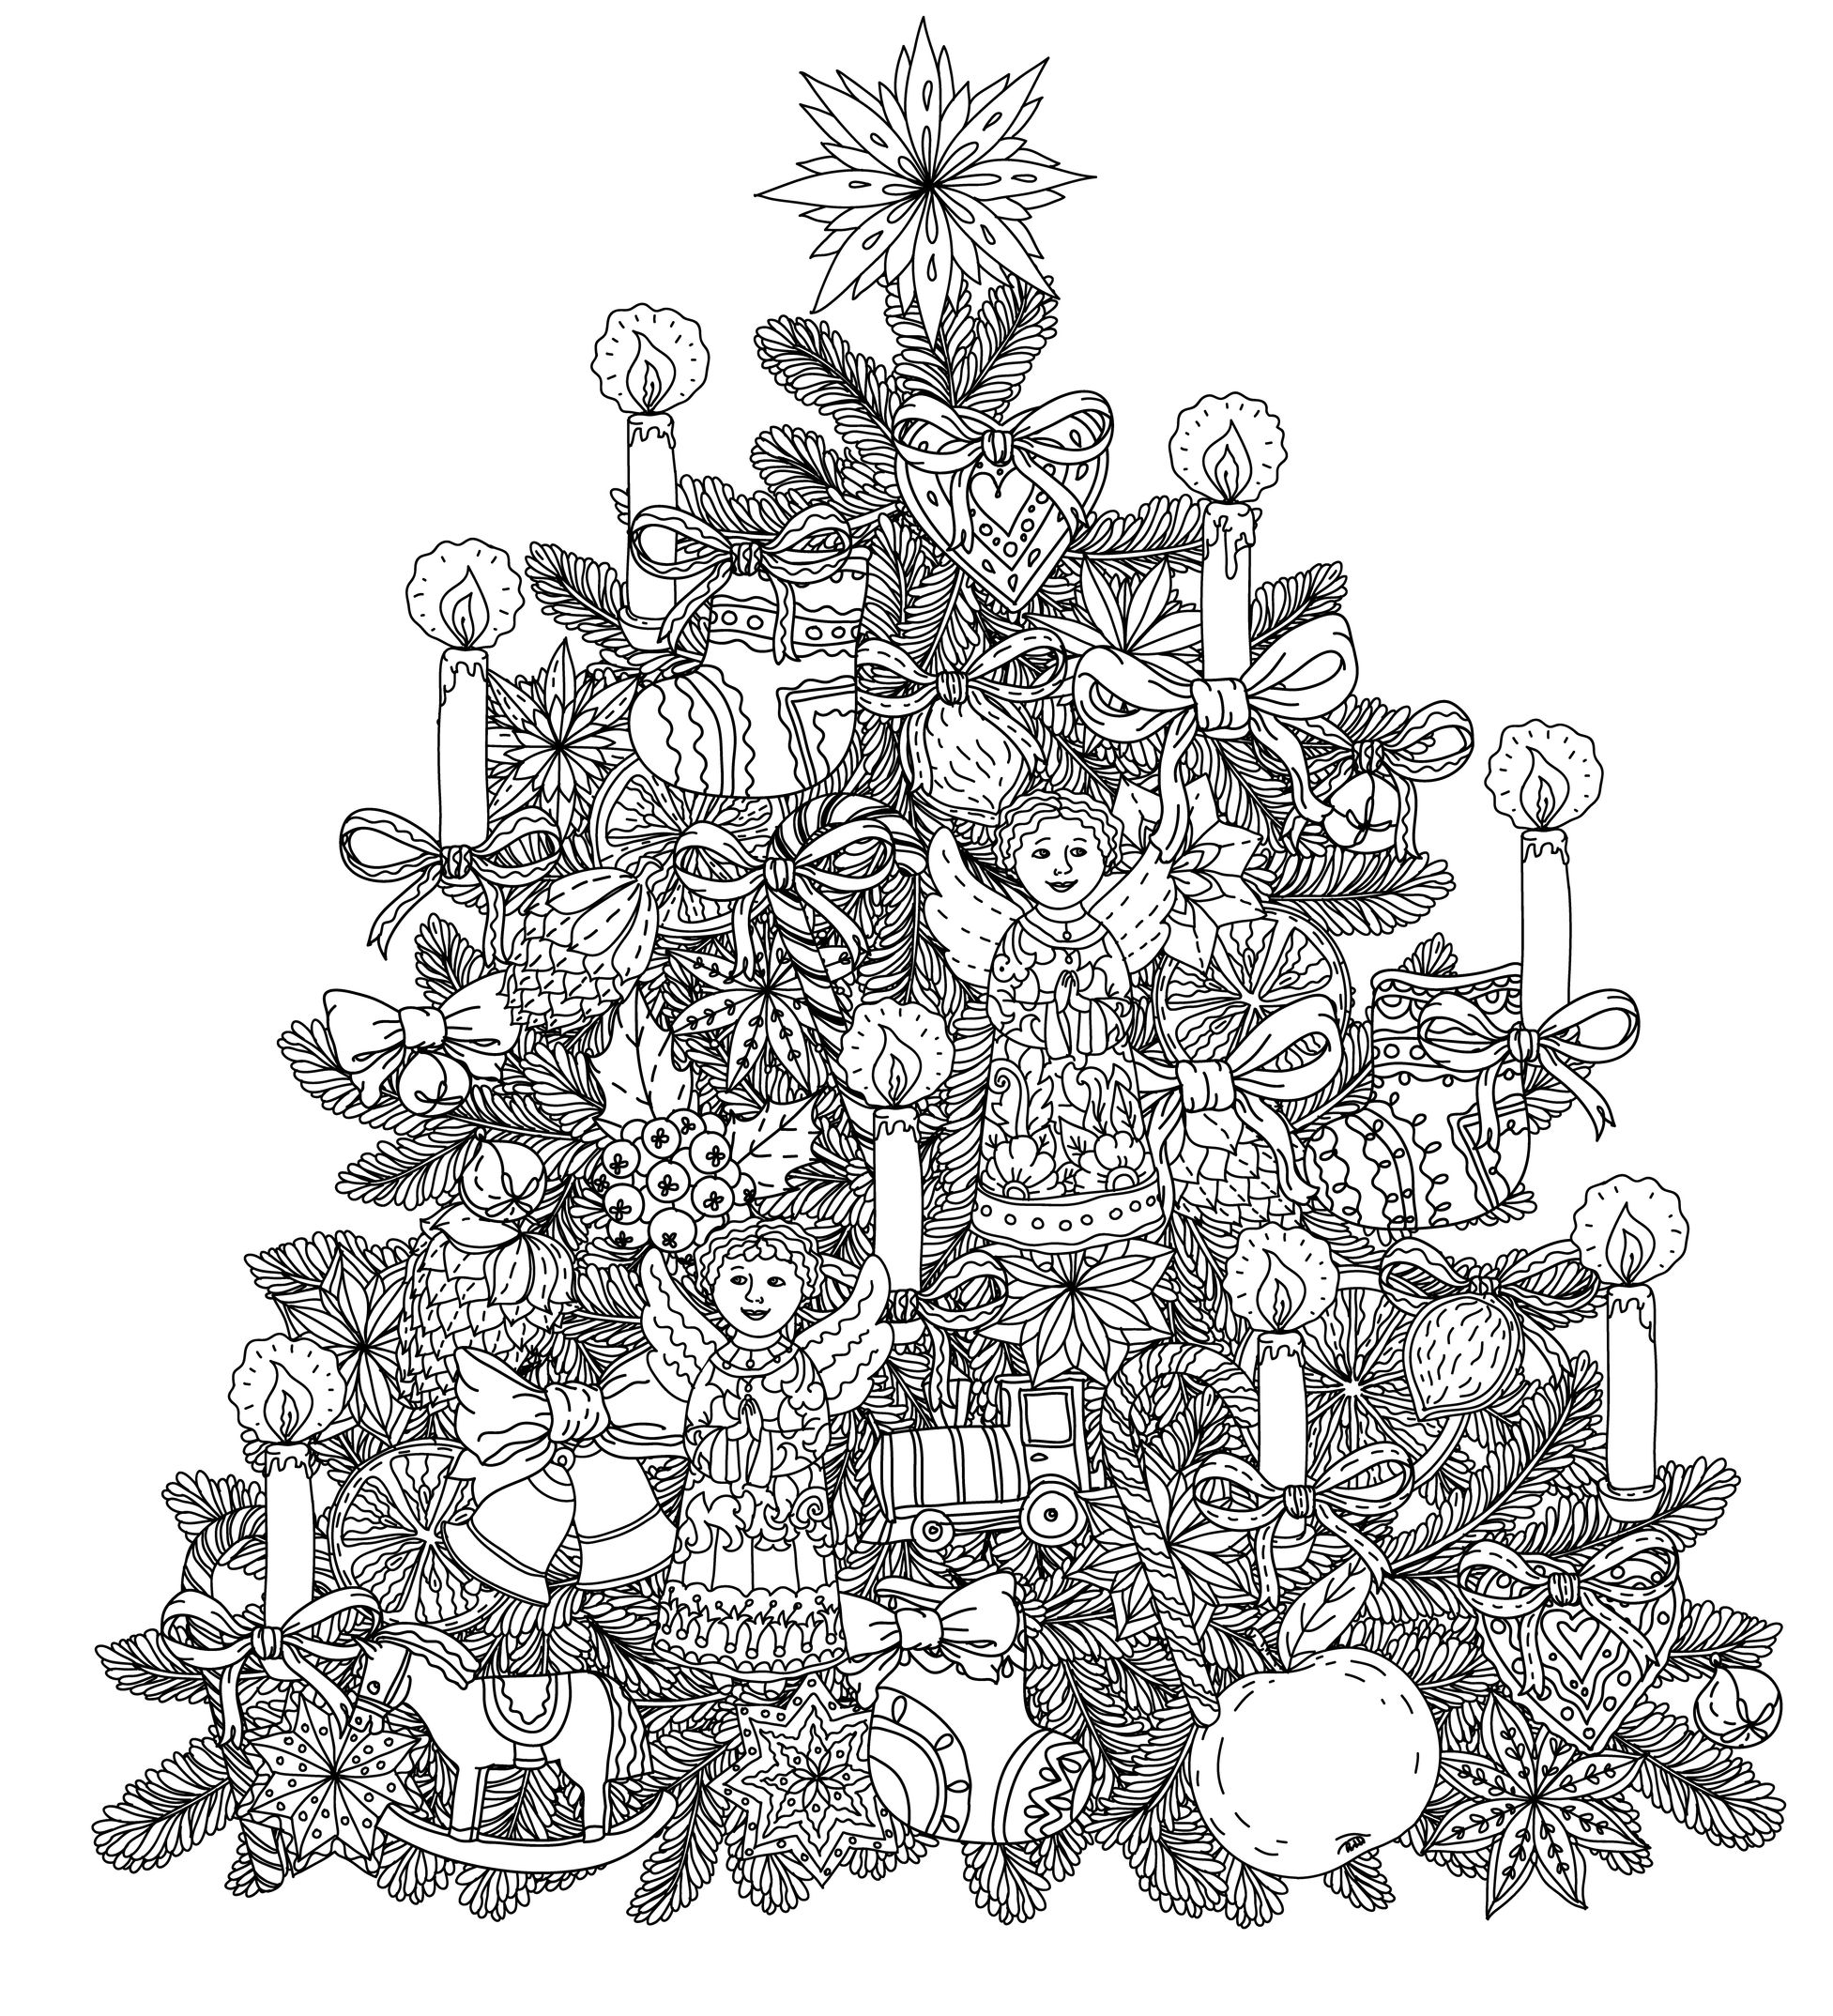 Coloring pages xmas decorations - Coloring Adult Christmas Tree With Ornaments By Mashabr Free